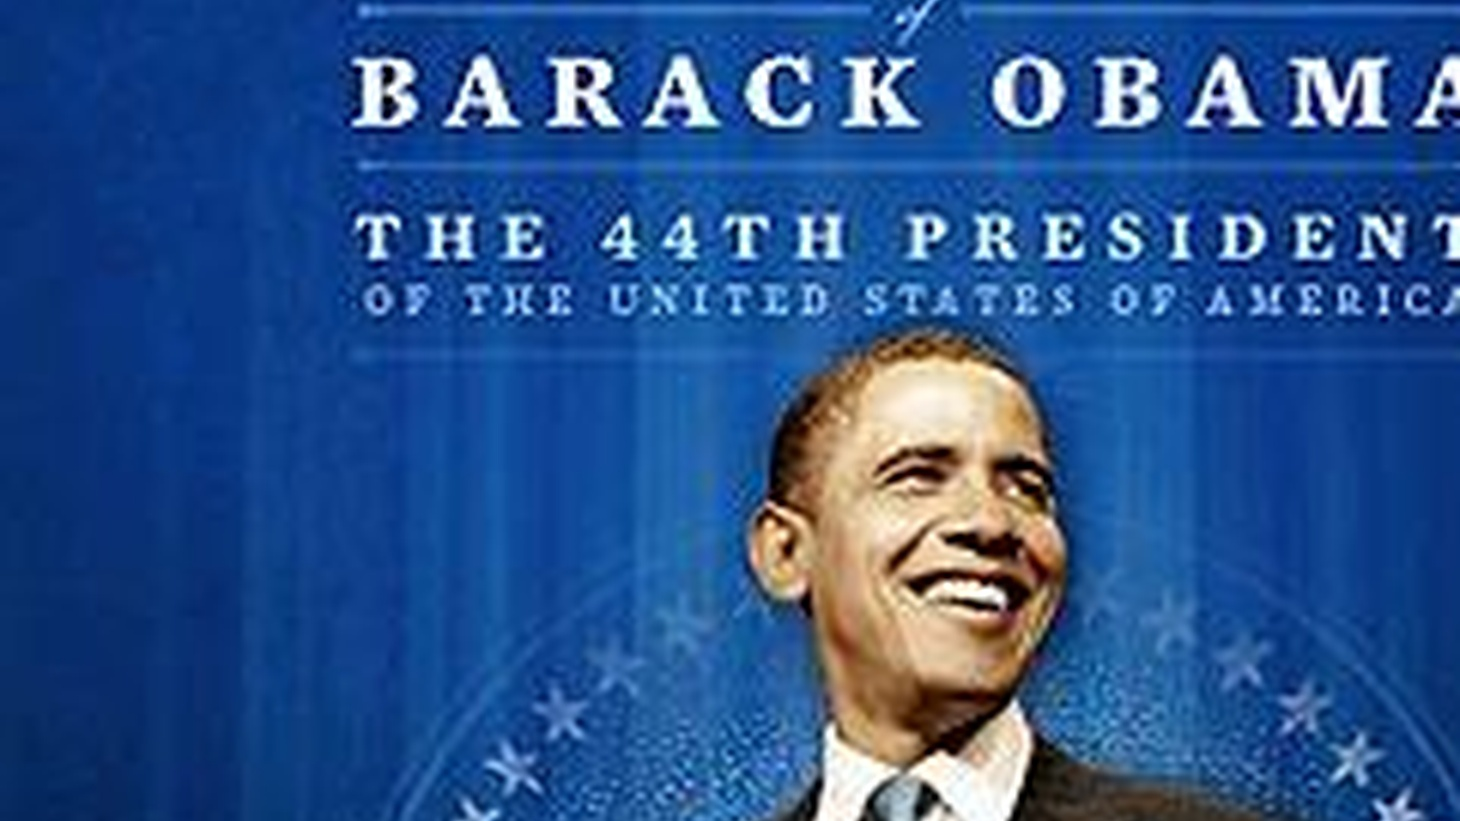 On January 20, Barack Obama will be sworn in as the 44th President of the United States and the first African American to hold the nation's highest office. KCRW will present live coverage of this historic day.   Our day begins with National Public Radio's coverage of the inauguration from 7-11am.   (Click on 'More' for additional special programming.)